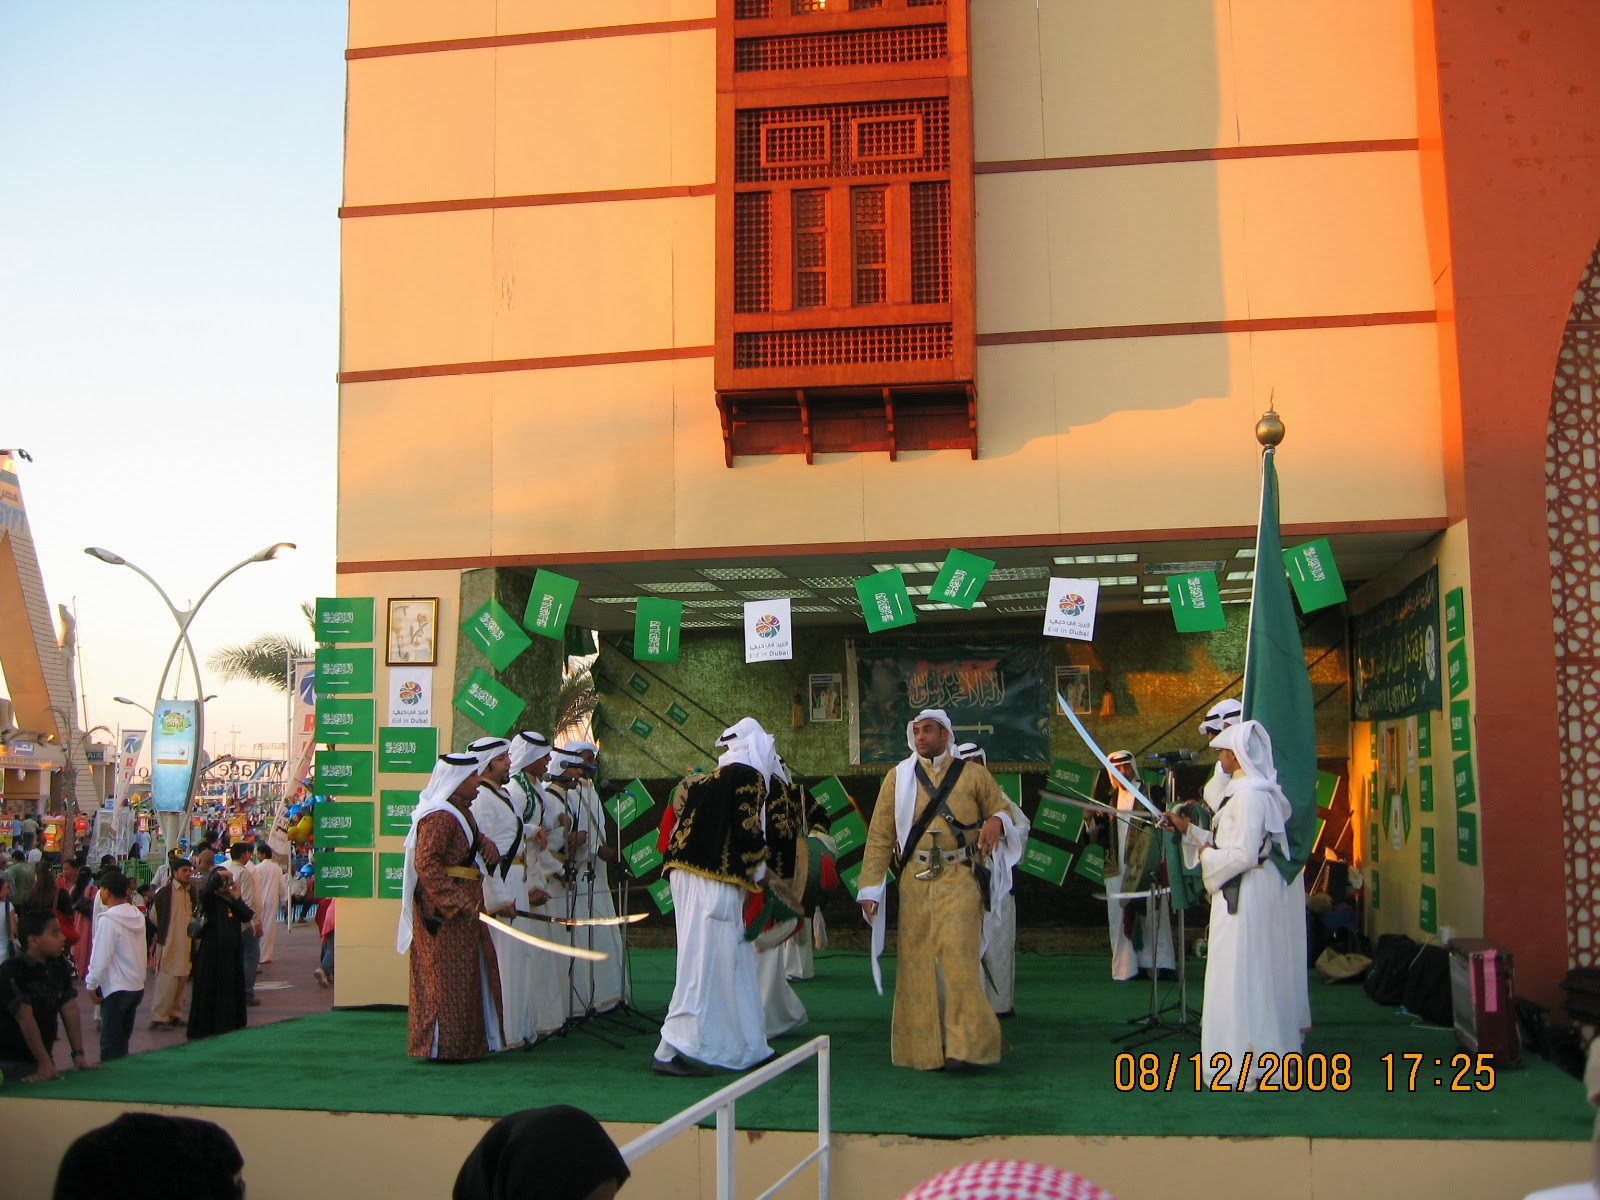 my world global village dubai a photo essay part 1 performance at kingdom of saudi arabia pavillion